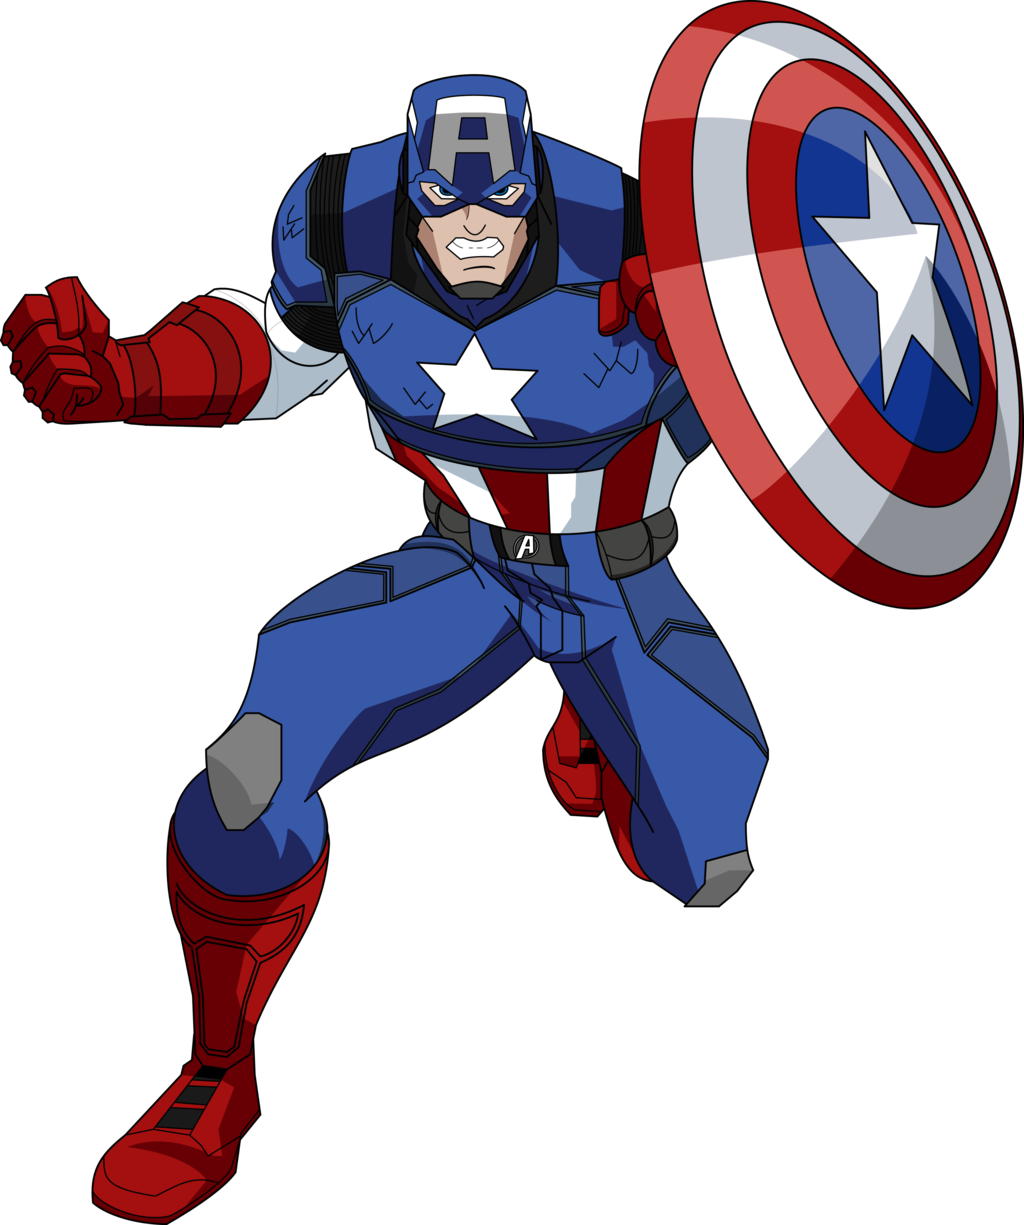 Captain America: The Winter Soldier clipart #16, Download drawings